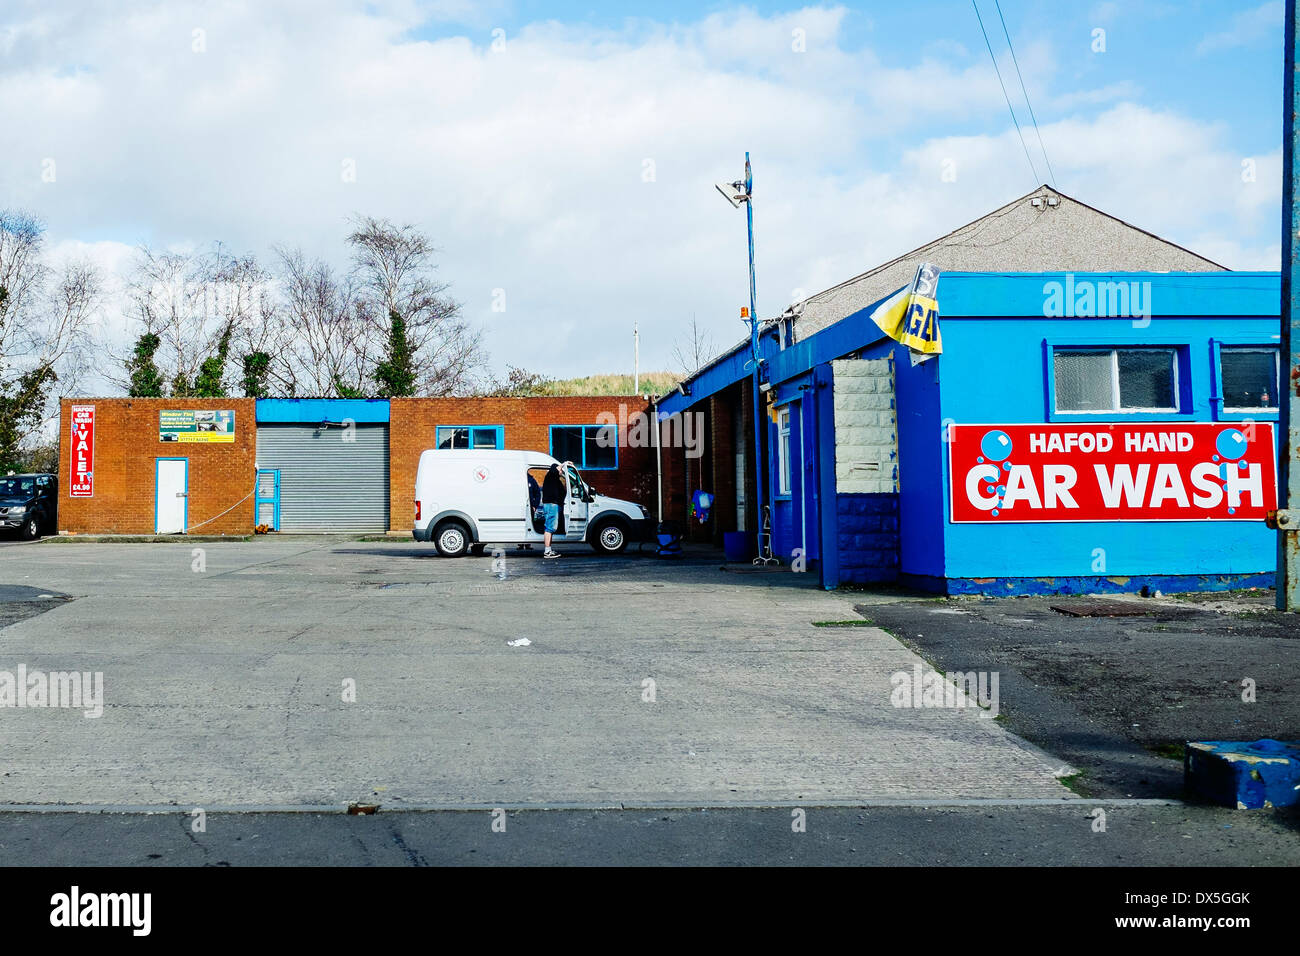 Hand car wash stock photos hand car wash stock images alamy a hand car wash in swansea wales stock image solutioingenieria Image collections